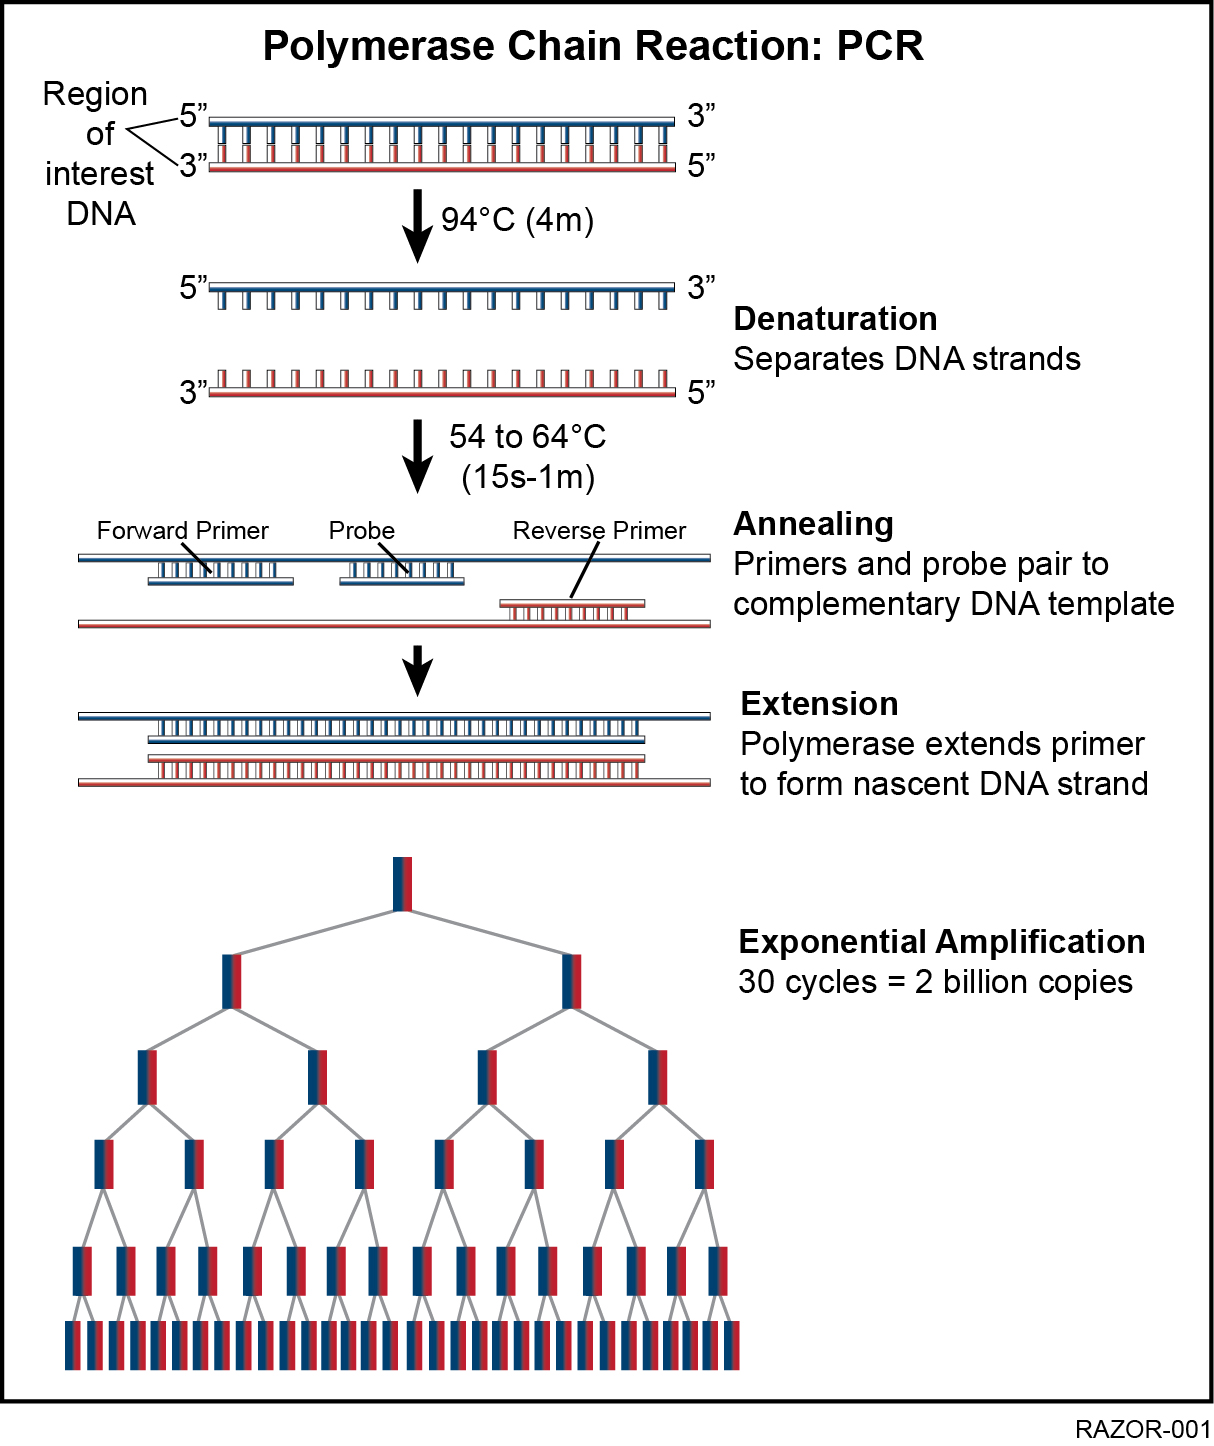 Polymerase Chain Reaction (PCR) Technology